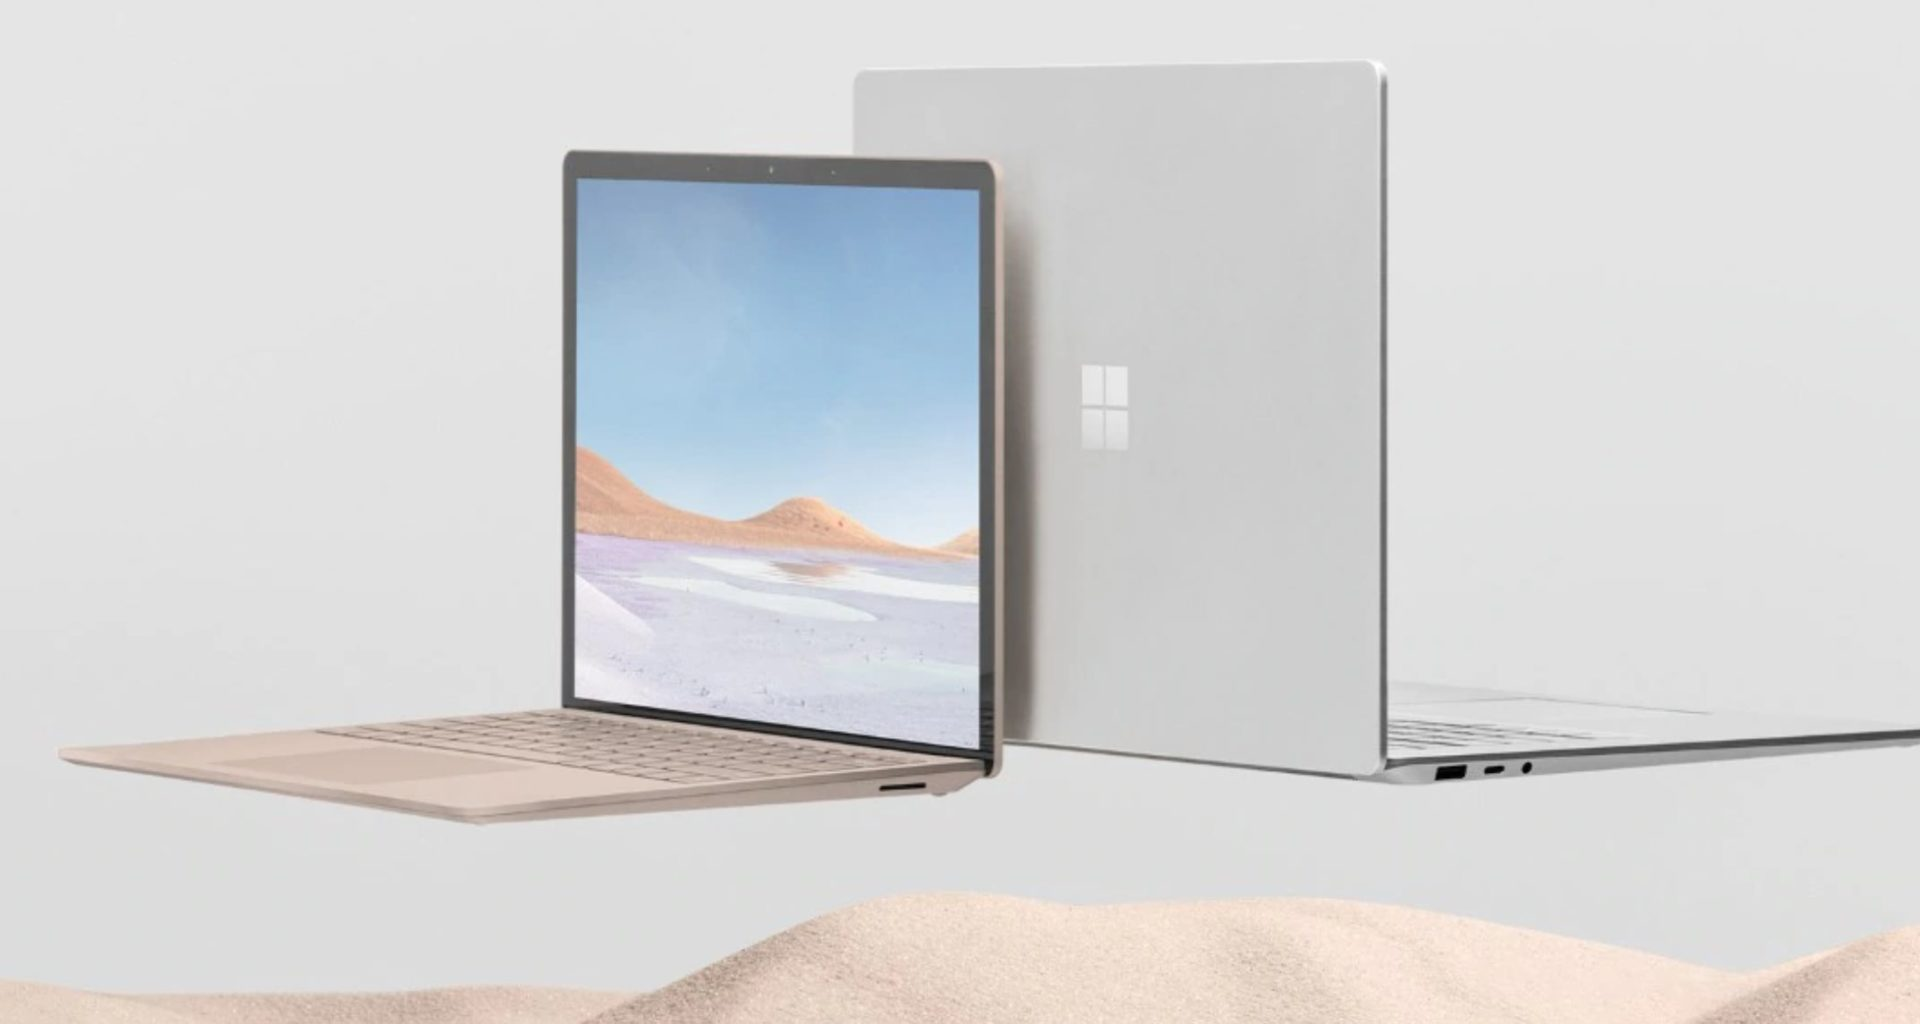 Microsoft to launch mid-range Surface laptop for under $600